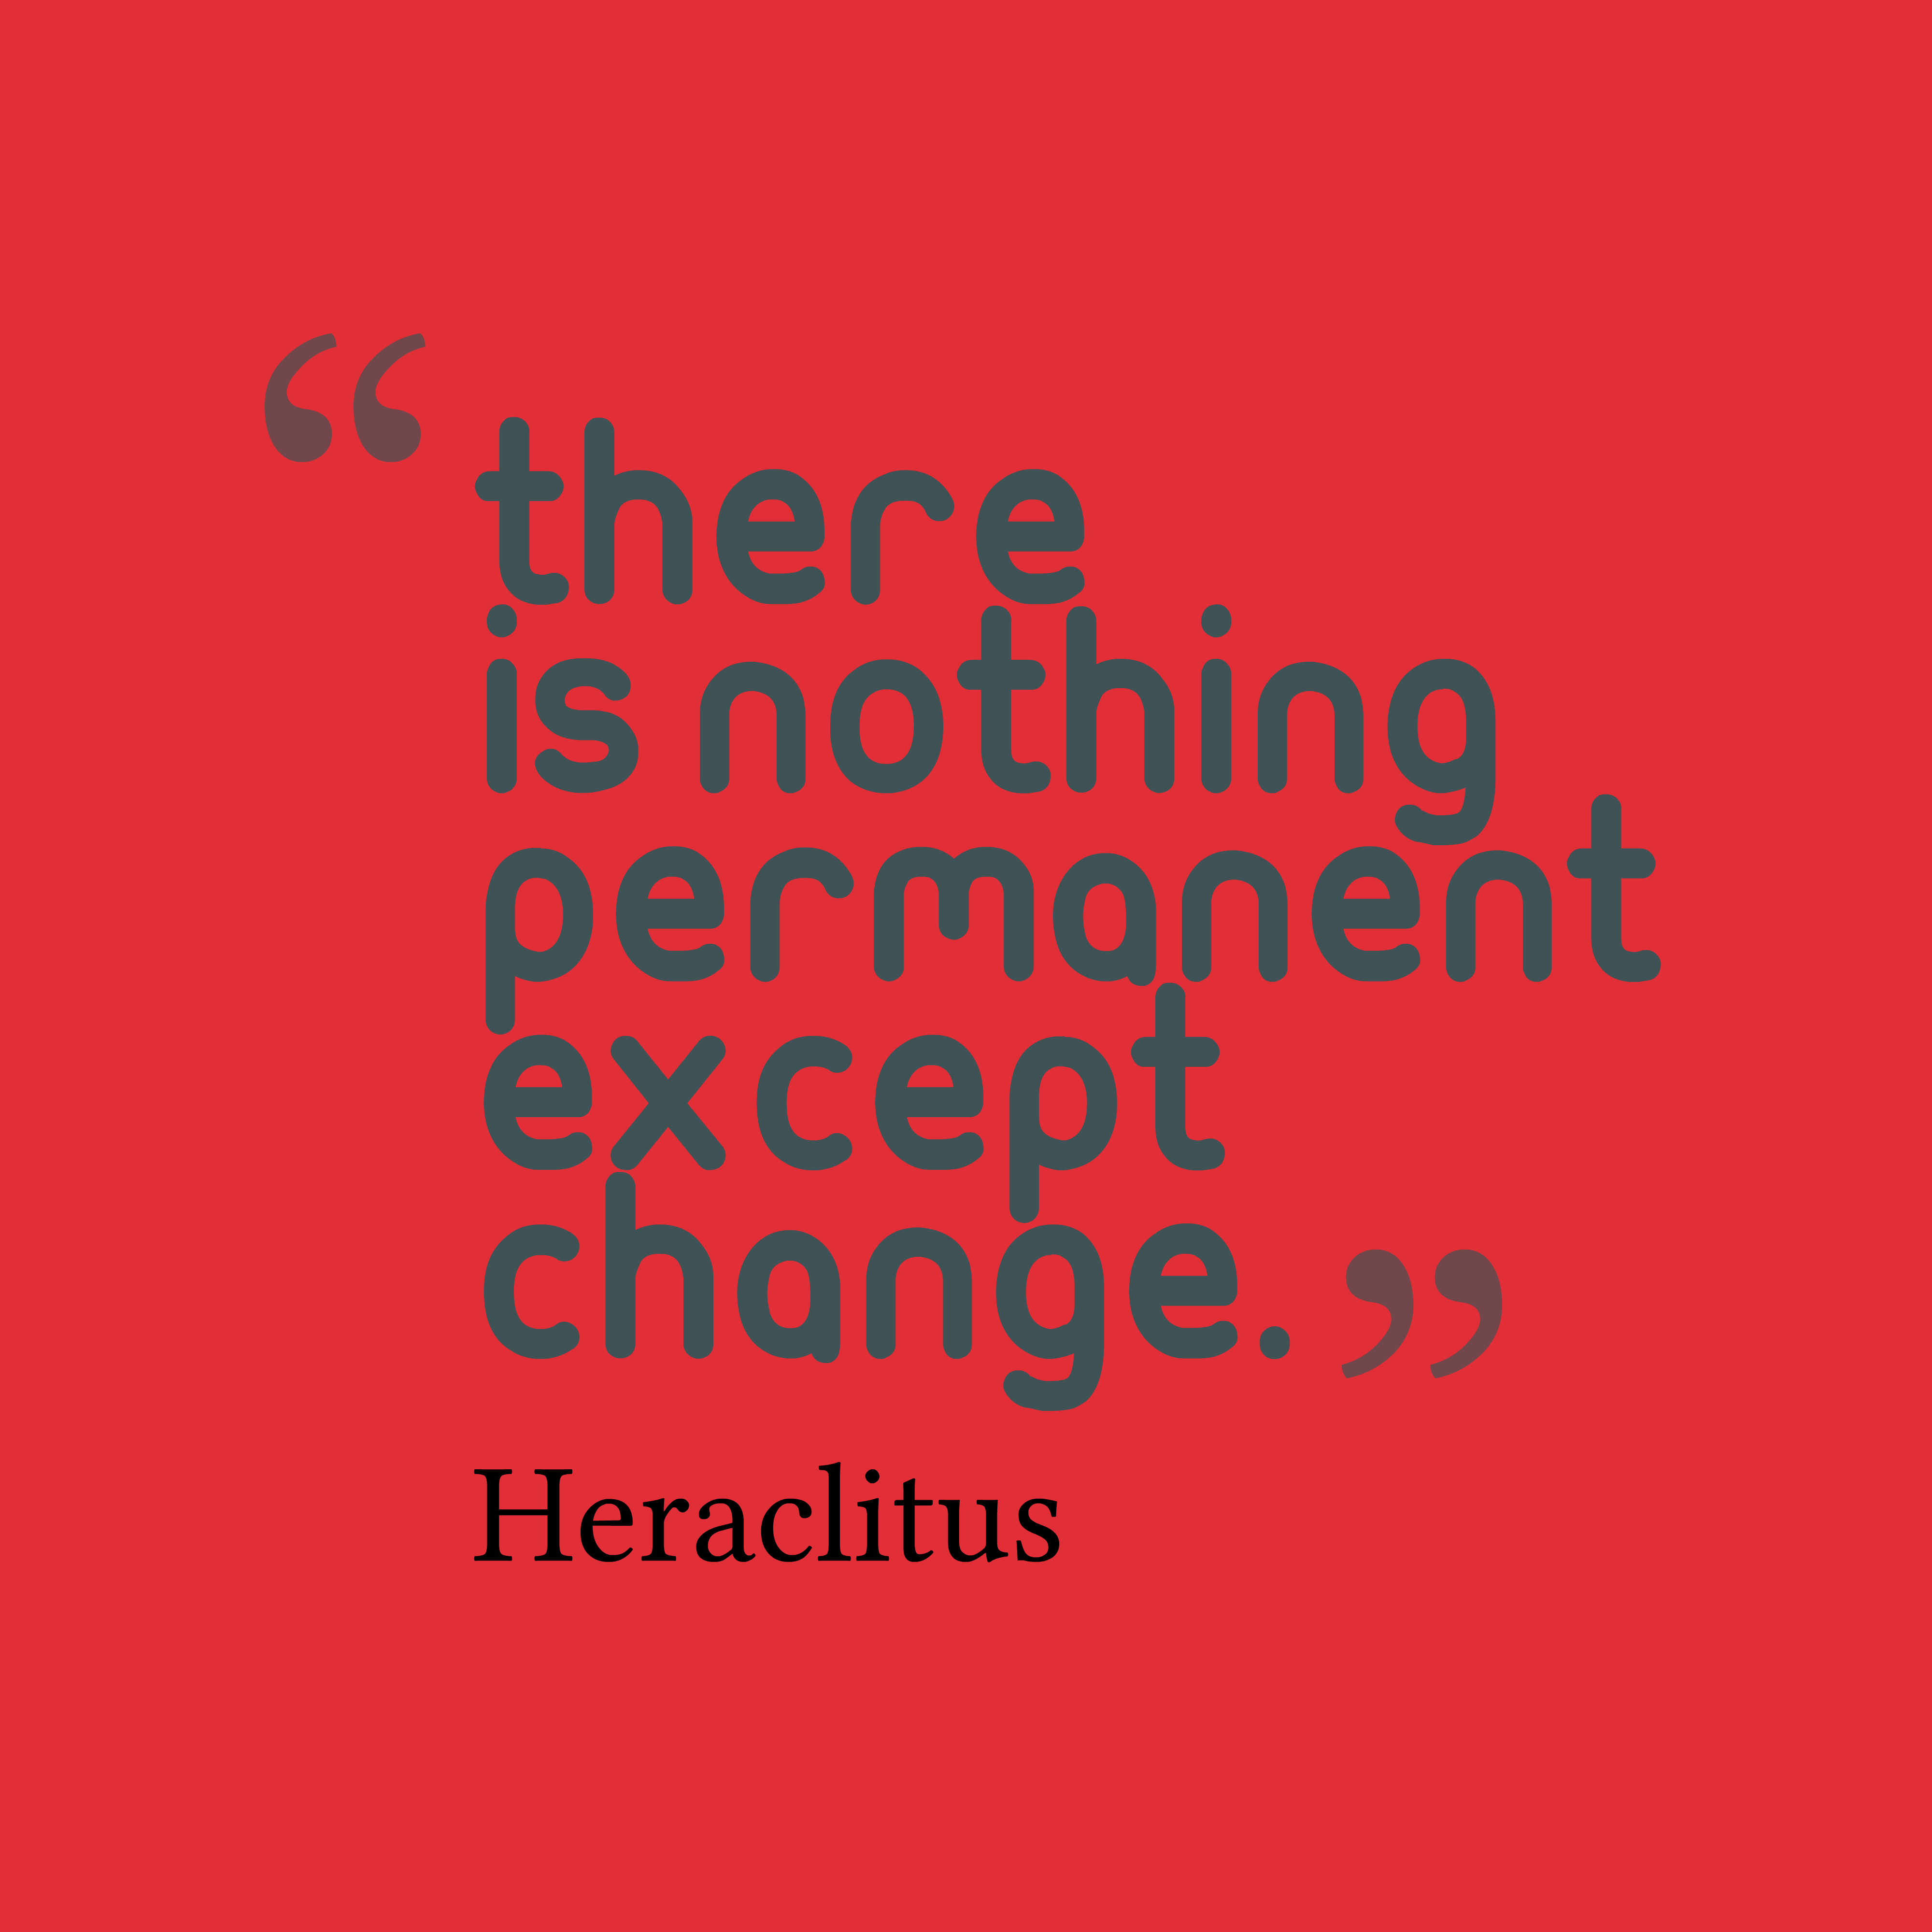 Quotes image of There is nothing permanent except change.